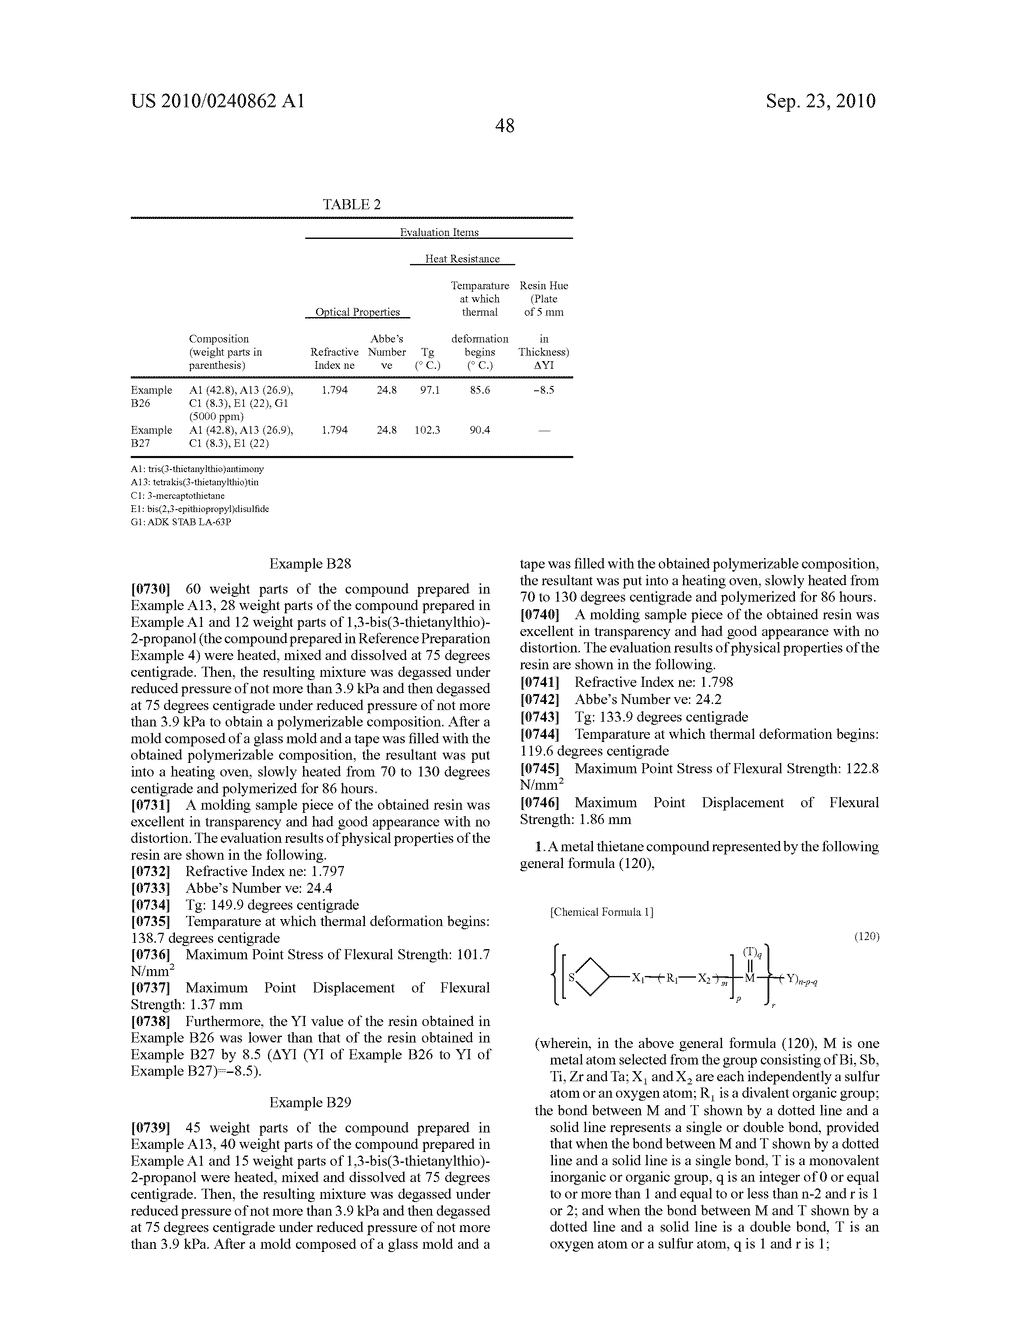 METAL THIETANE COMPOUND, POLYMERIZABLE COMPOSITION CONTAINING THE COMPOUND, RESIN AND USE OF THE RESIN - diagram, schematic, and image 49